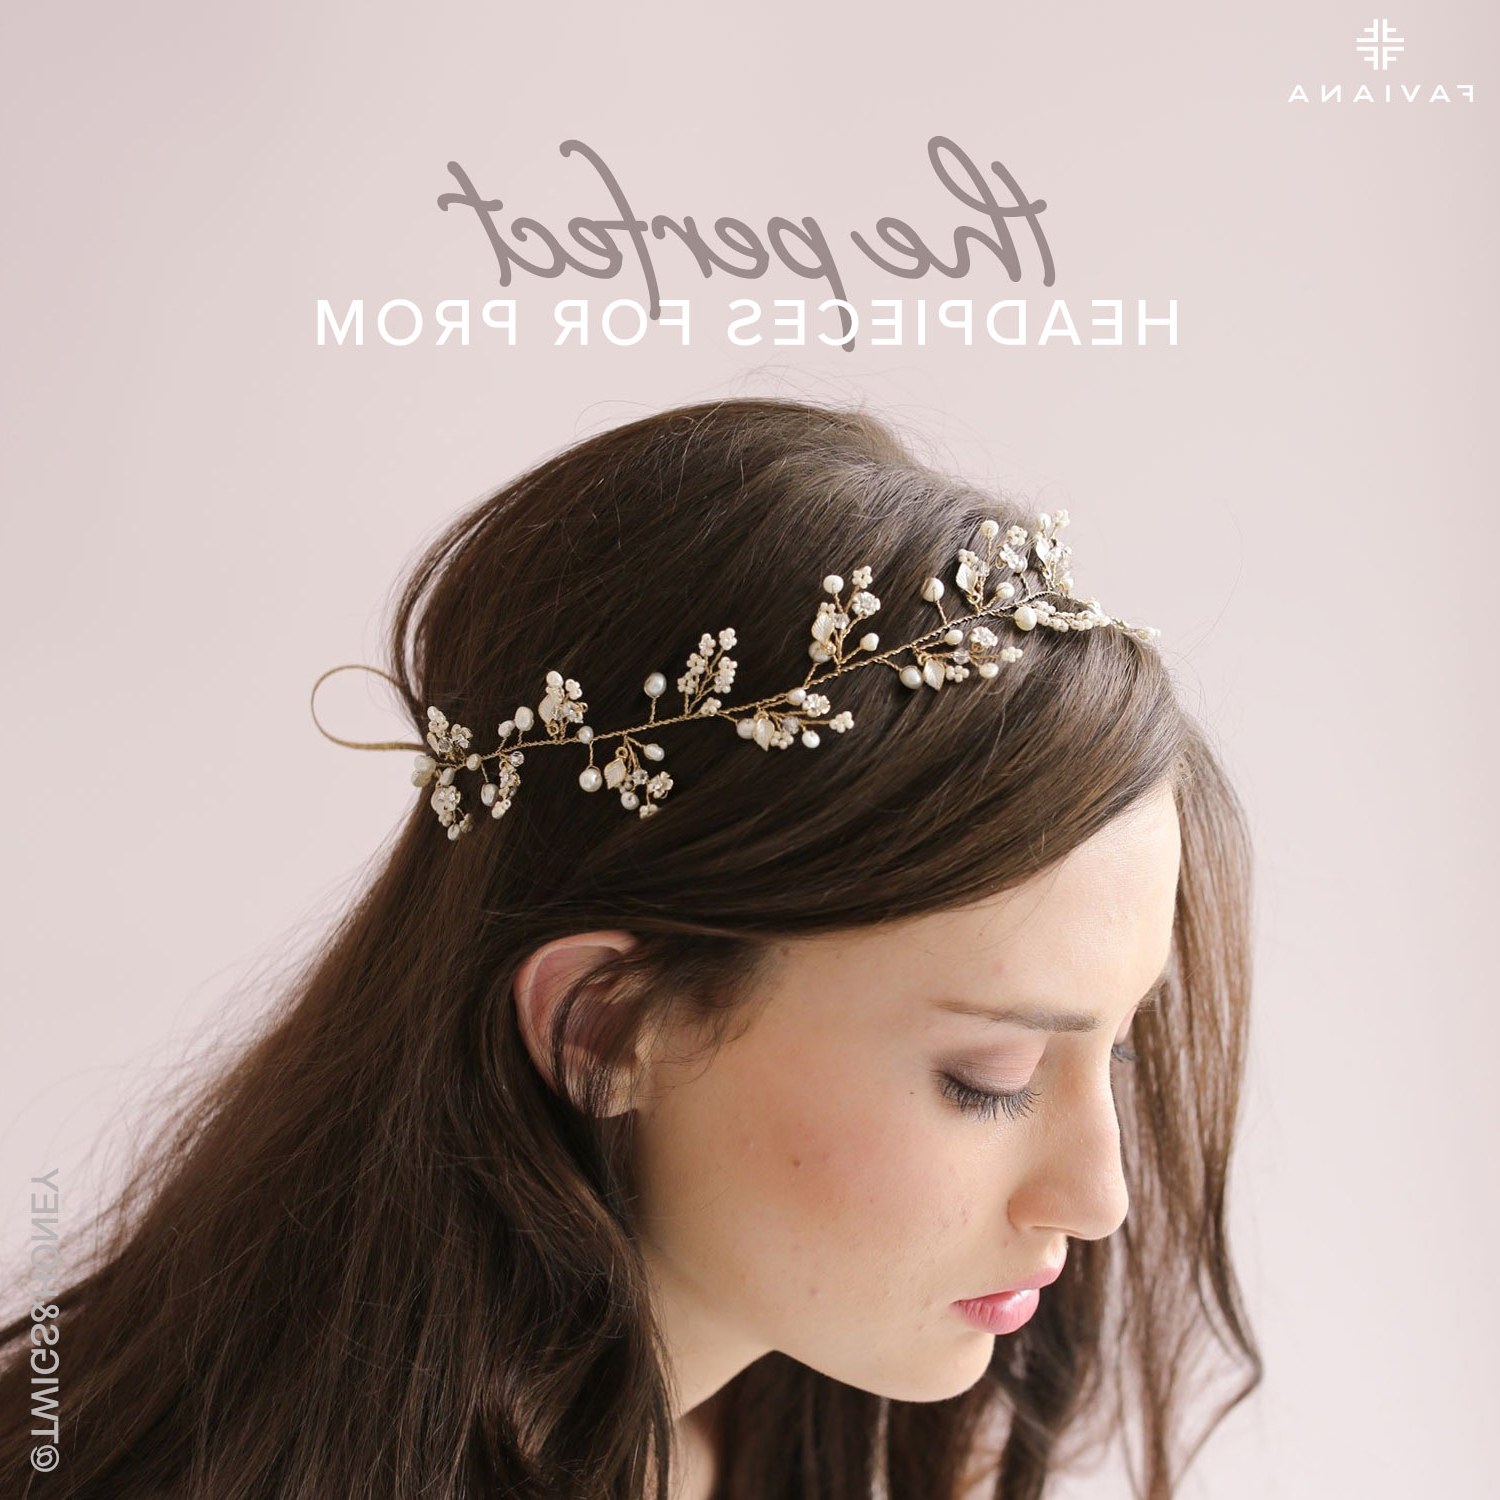 2017 Floral Braid Crowns Hairstyles For Prom Inside The Perfect Headpieces For Prom (View 1 of 20)